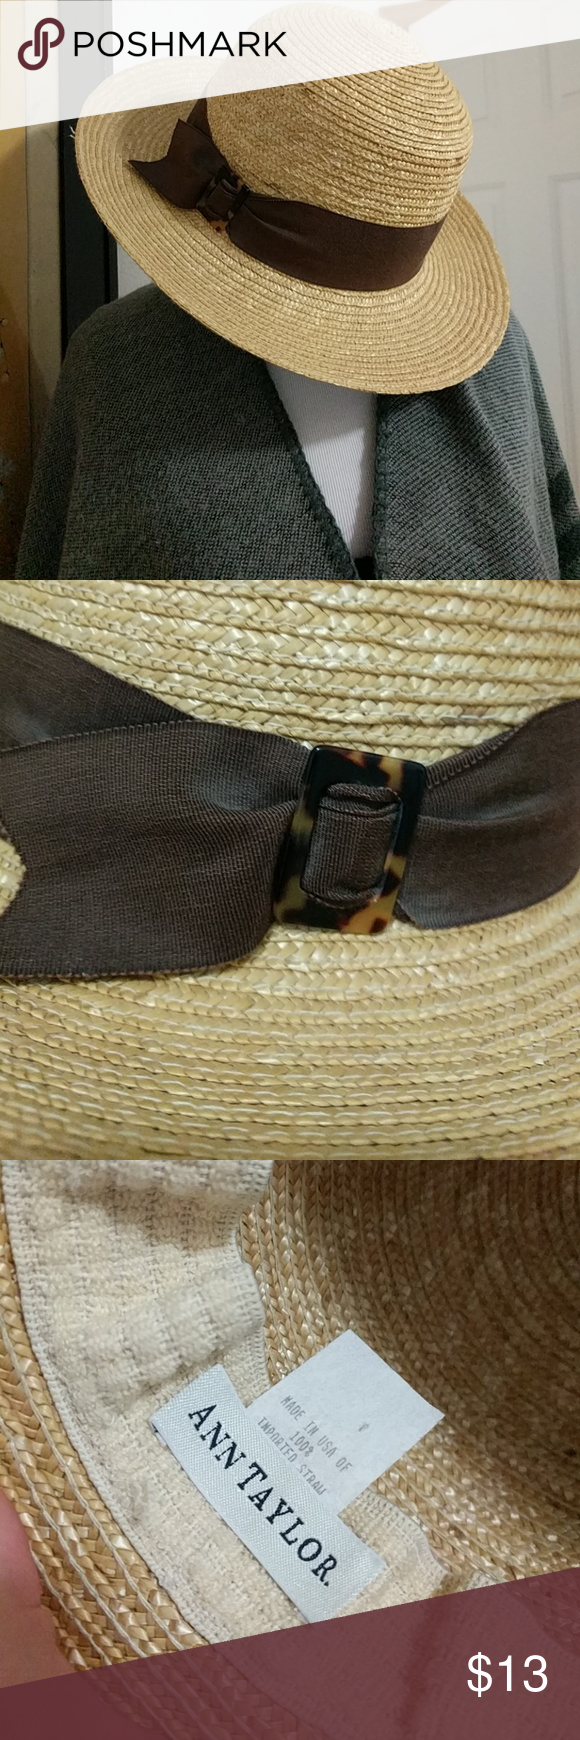 0efcd1d6750d7 Vintage Ann Taylor summer hat Excellent condition straw hat with brown  Ribbon and tortoise shell clasp